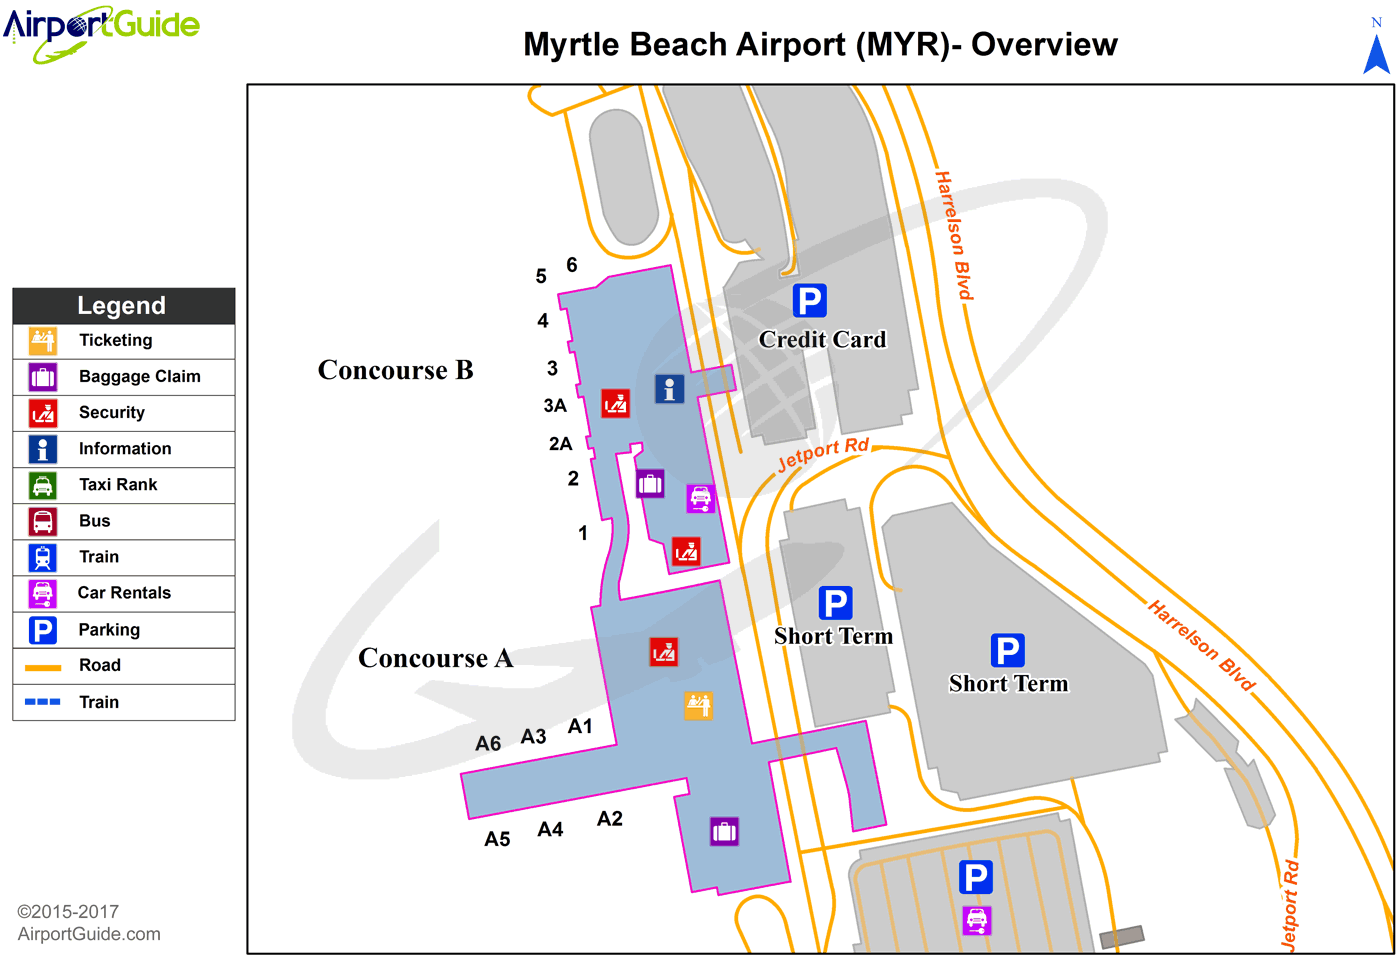 Myrtle Beach - Myrtle Beach International (MYR) Airport Terminal Map - Overview